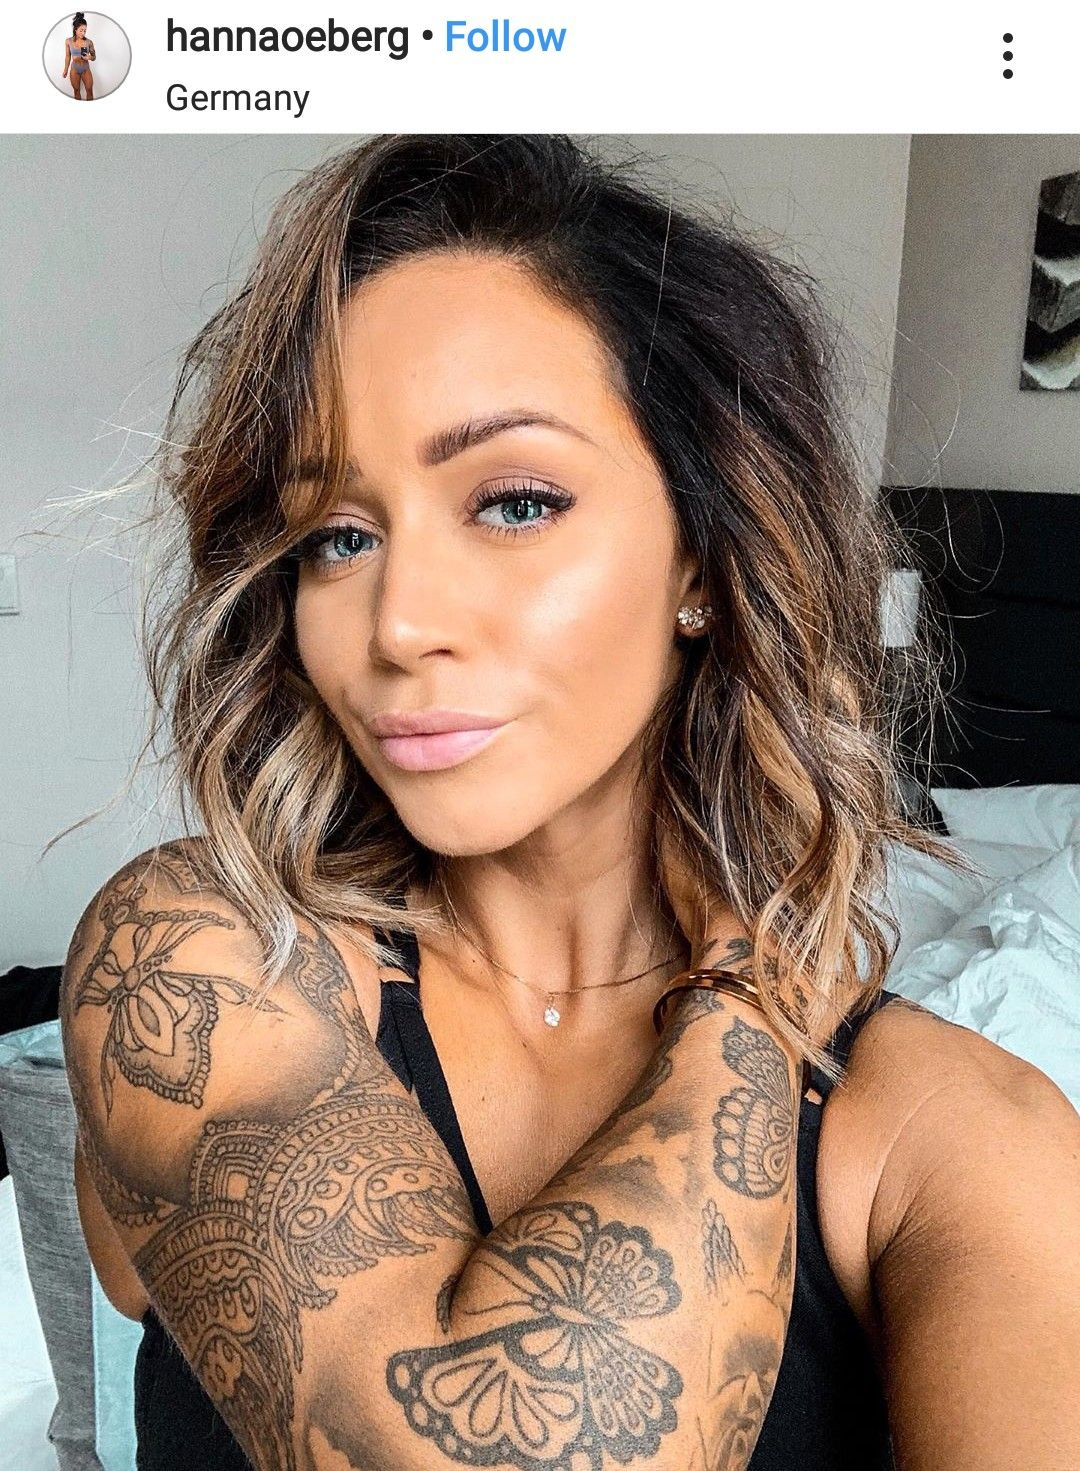 Best Looking Arm Tattoos for Girls | Sleeve tattoos for women, Shoulder tattoos for women, Best